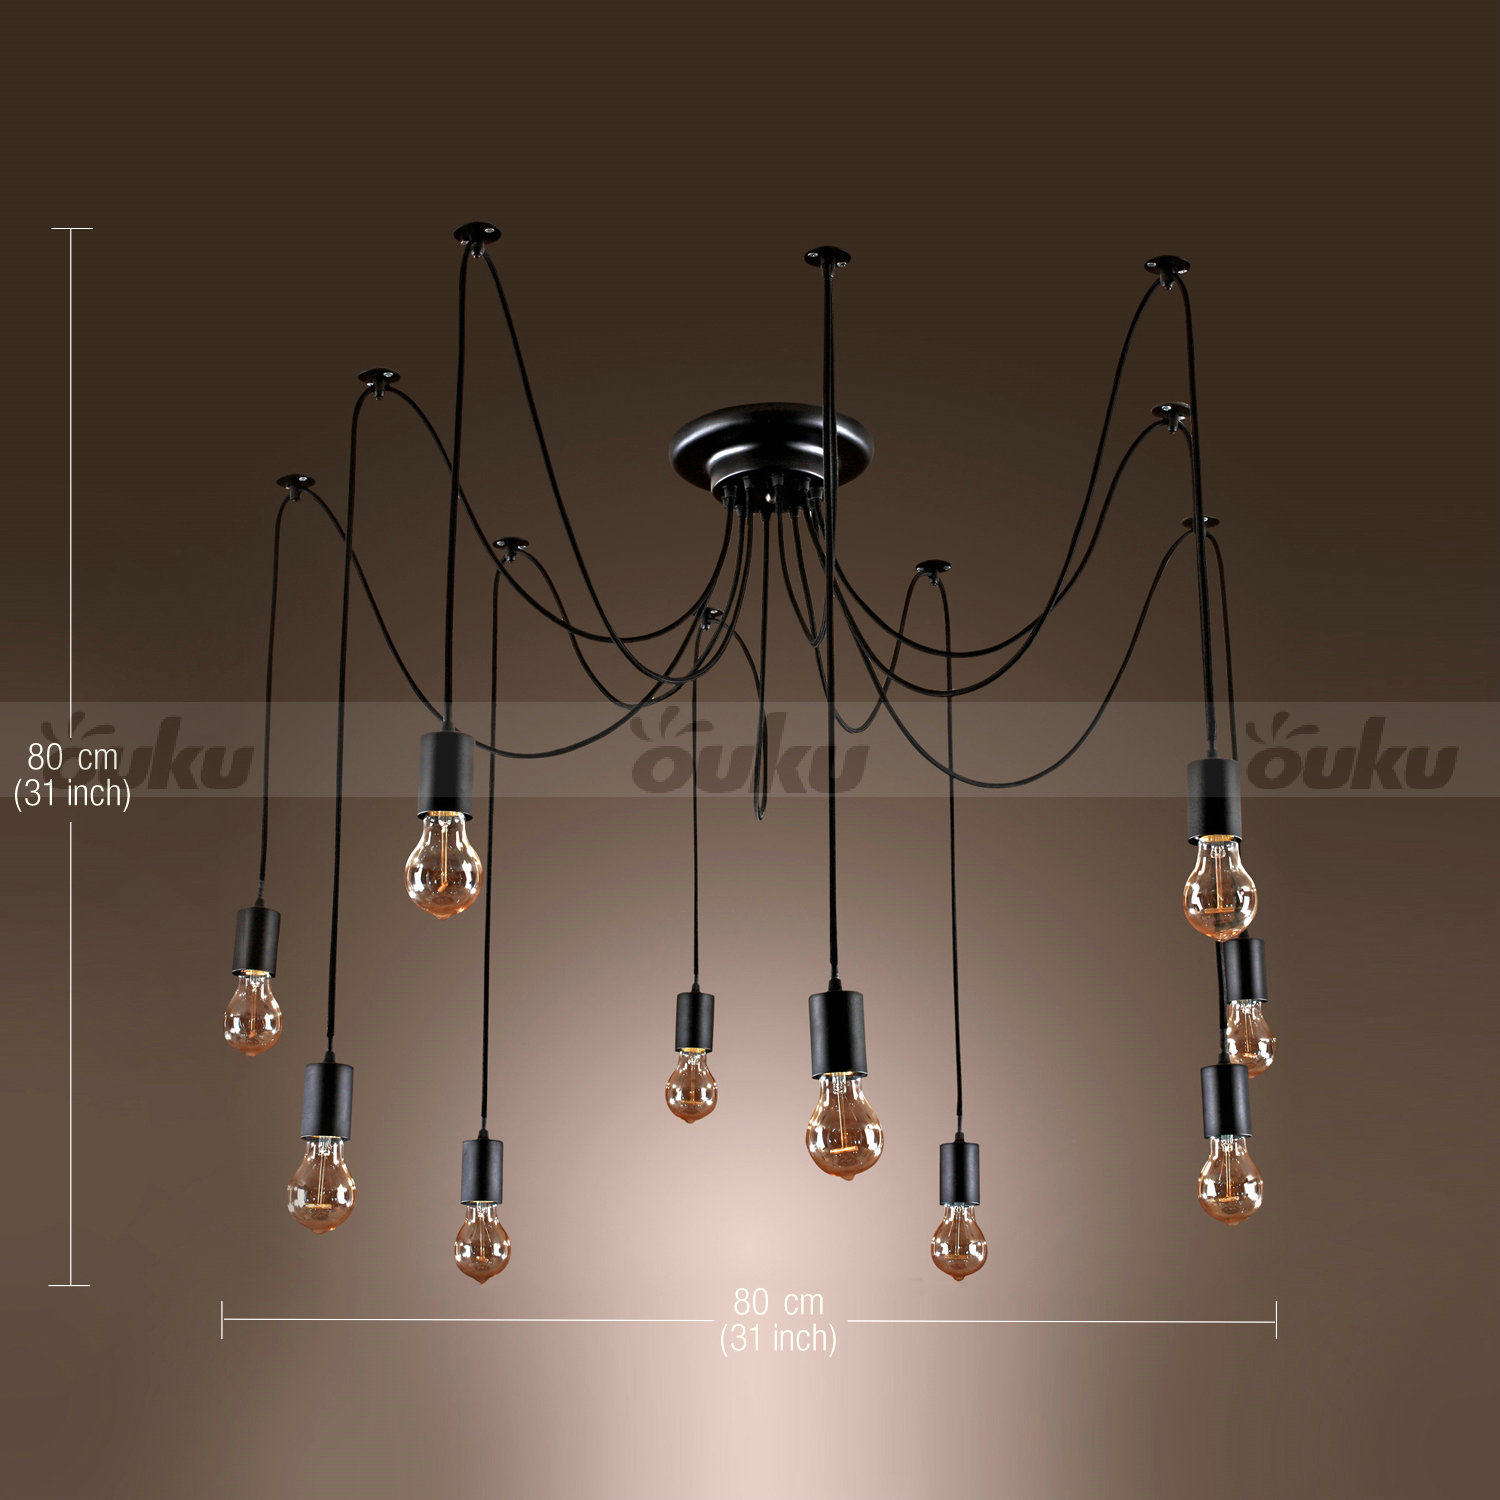 iron unique vintage wrought watt chandeliers bulbs fascinating lighting bulb contemporary chandelier made marvelous candelabra light custom new led spider stunning lamp modern